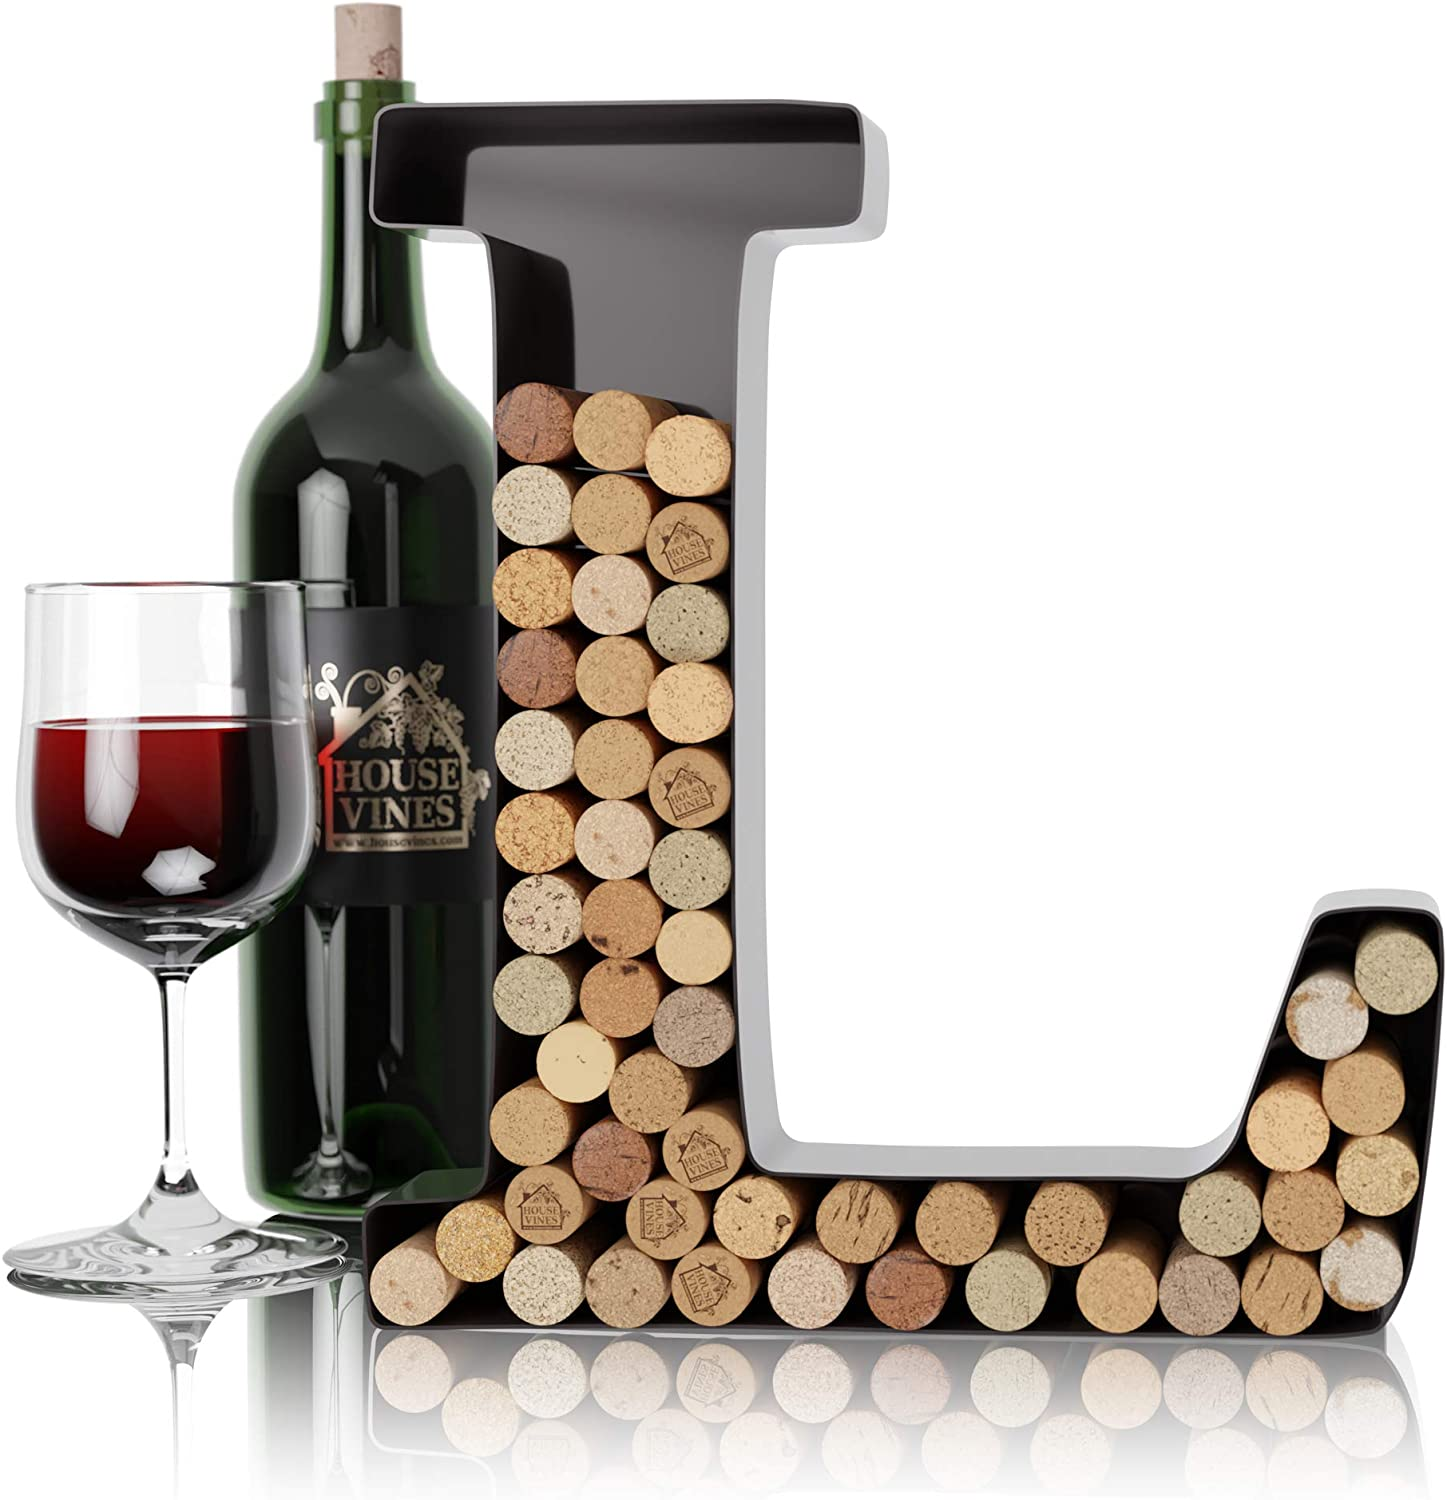 Wine Letter Cork Holder Art Wall Décor ~ Metal Letter Wine Cork Holder Monogram ~ Individual Wine Letter Cork Holders A Thru Z ~ Gifts for Wine Lovers ~ by HouseVines (L)